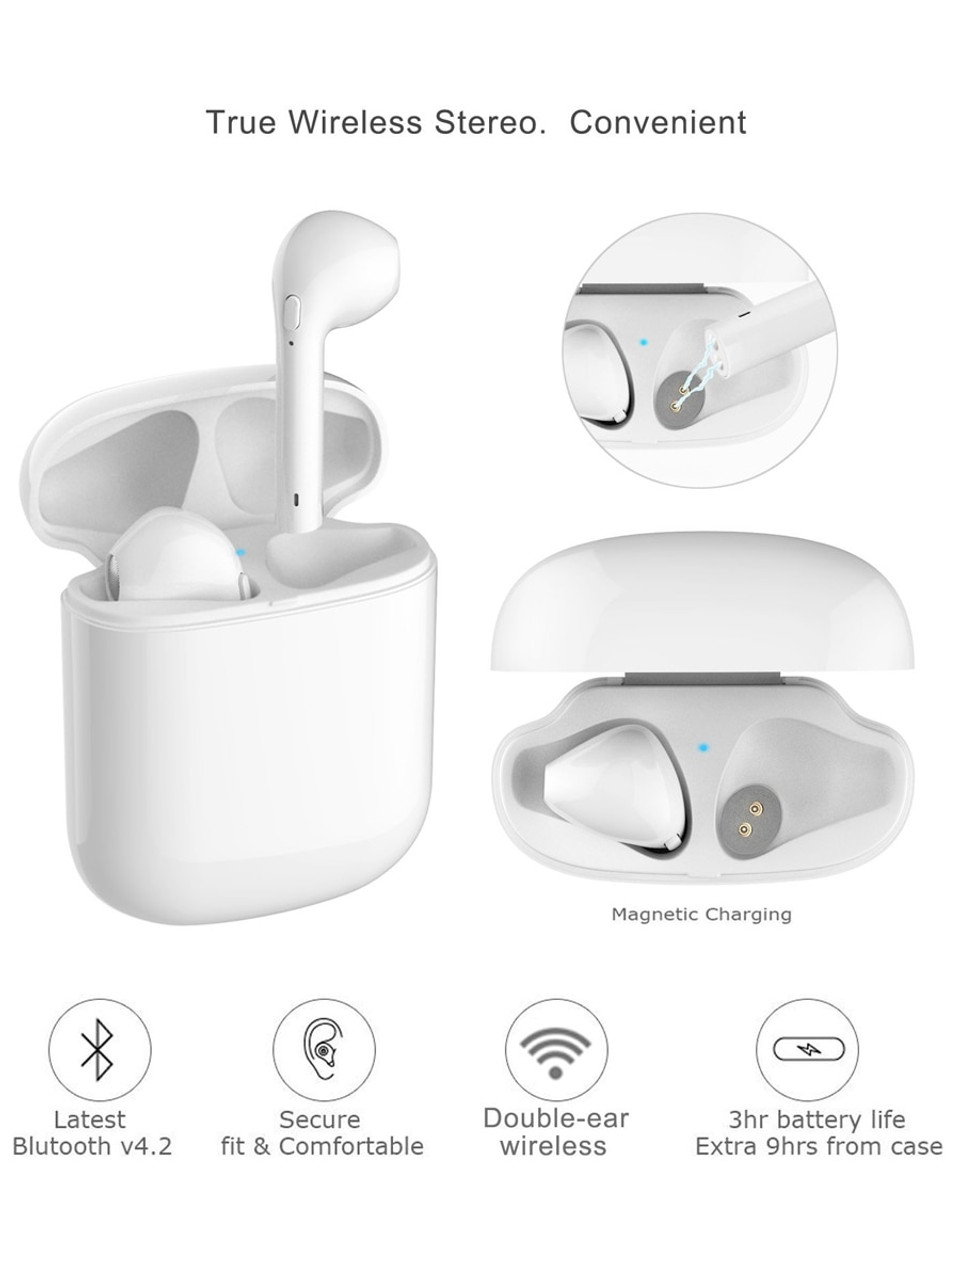 Sound & Sonic SS-WBHC-WT-R Wireless Earbuds Bluetooth v4.2 HD Stereo Sound (White with Charging Case) - Refurbished